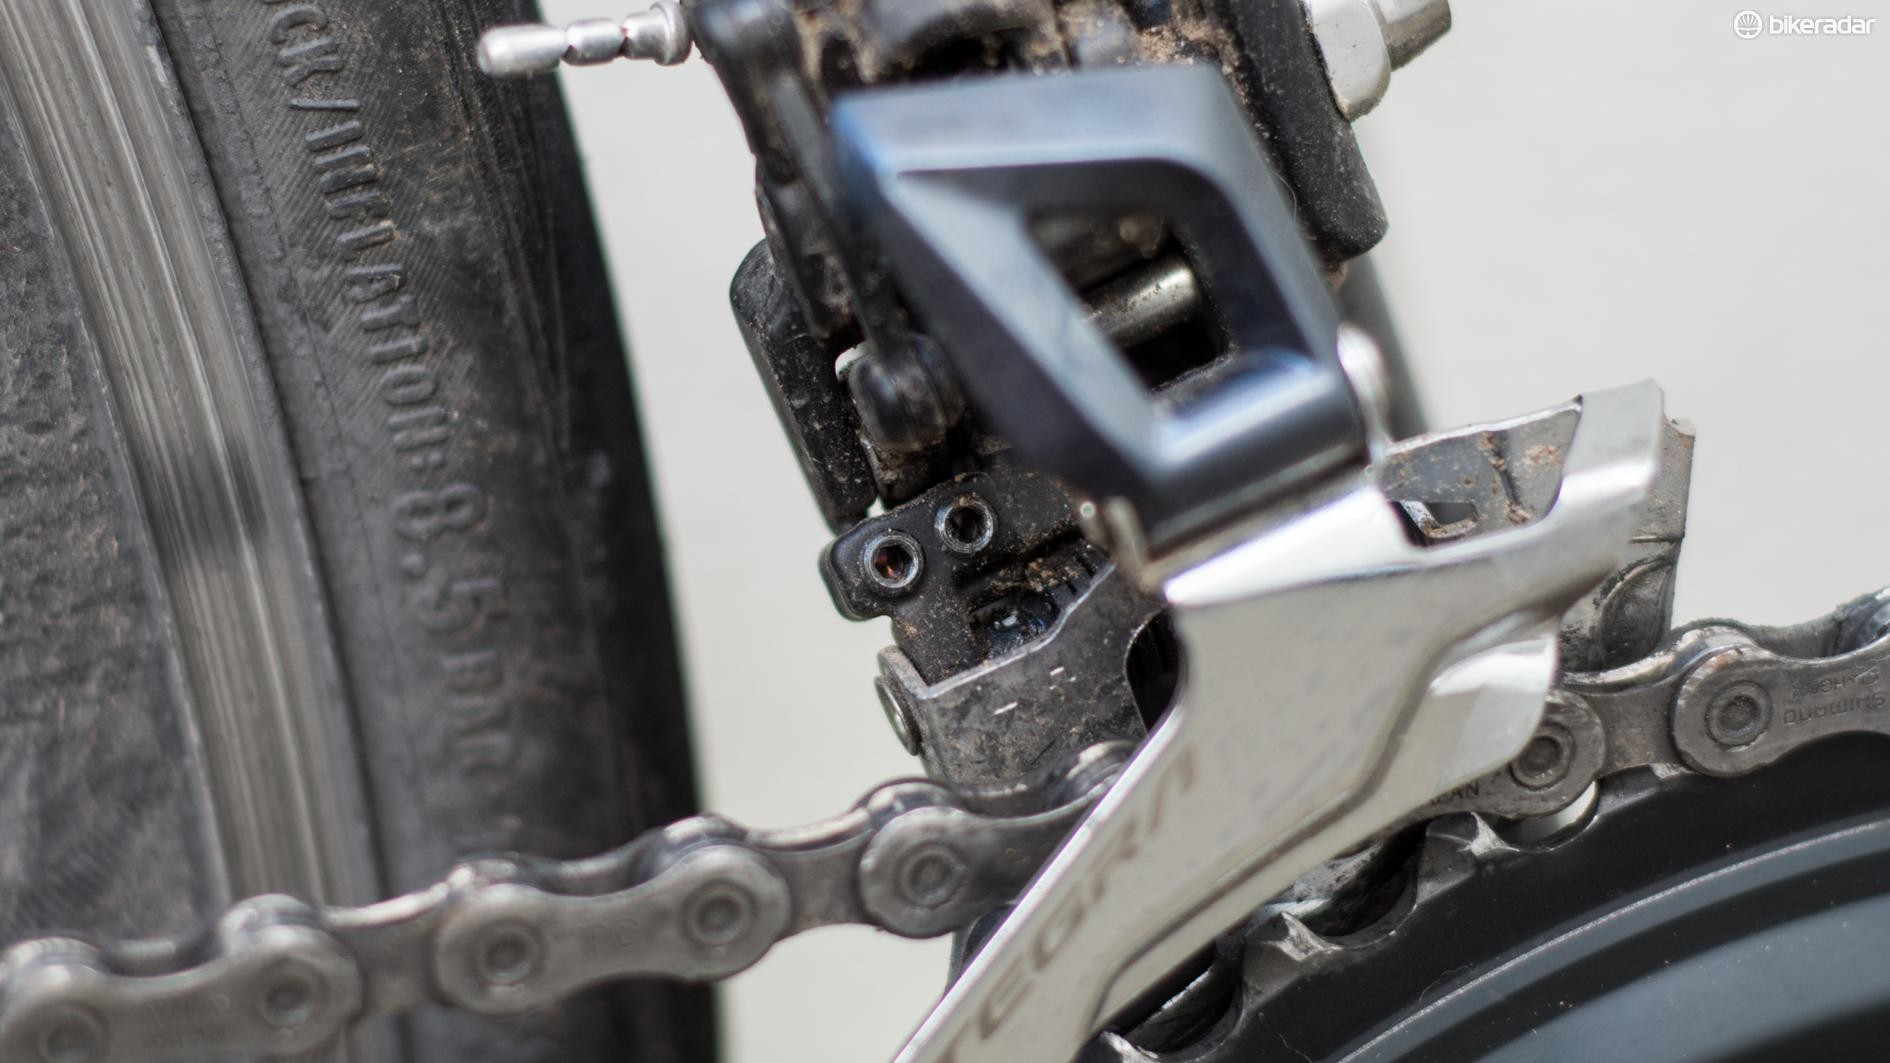 Hex heads are now used in lieu of crosshead screws